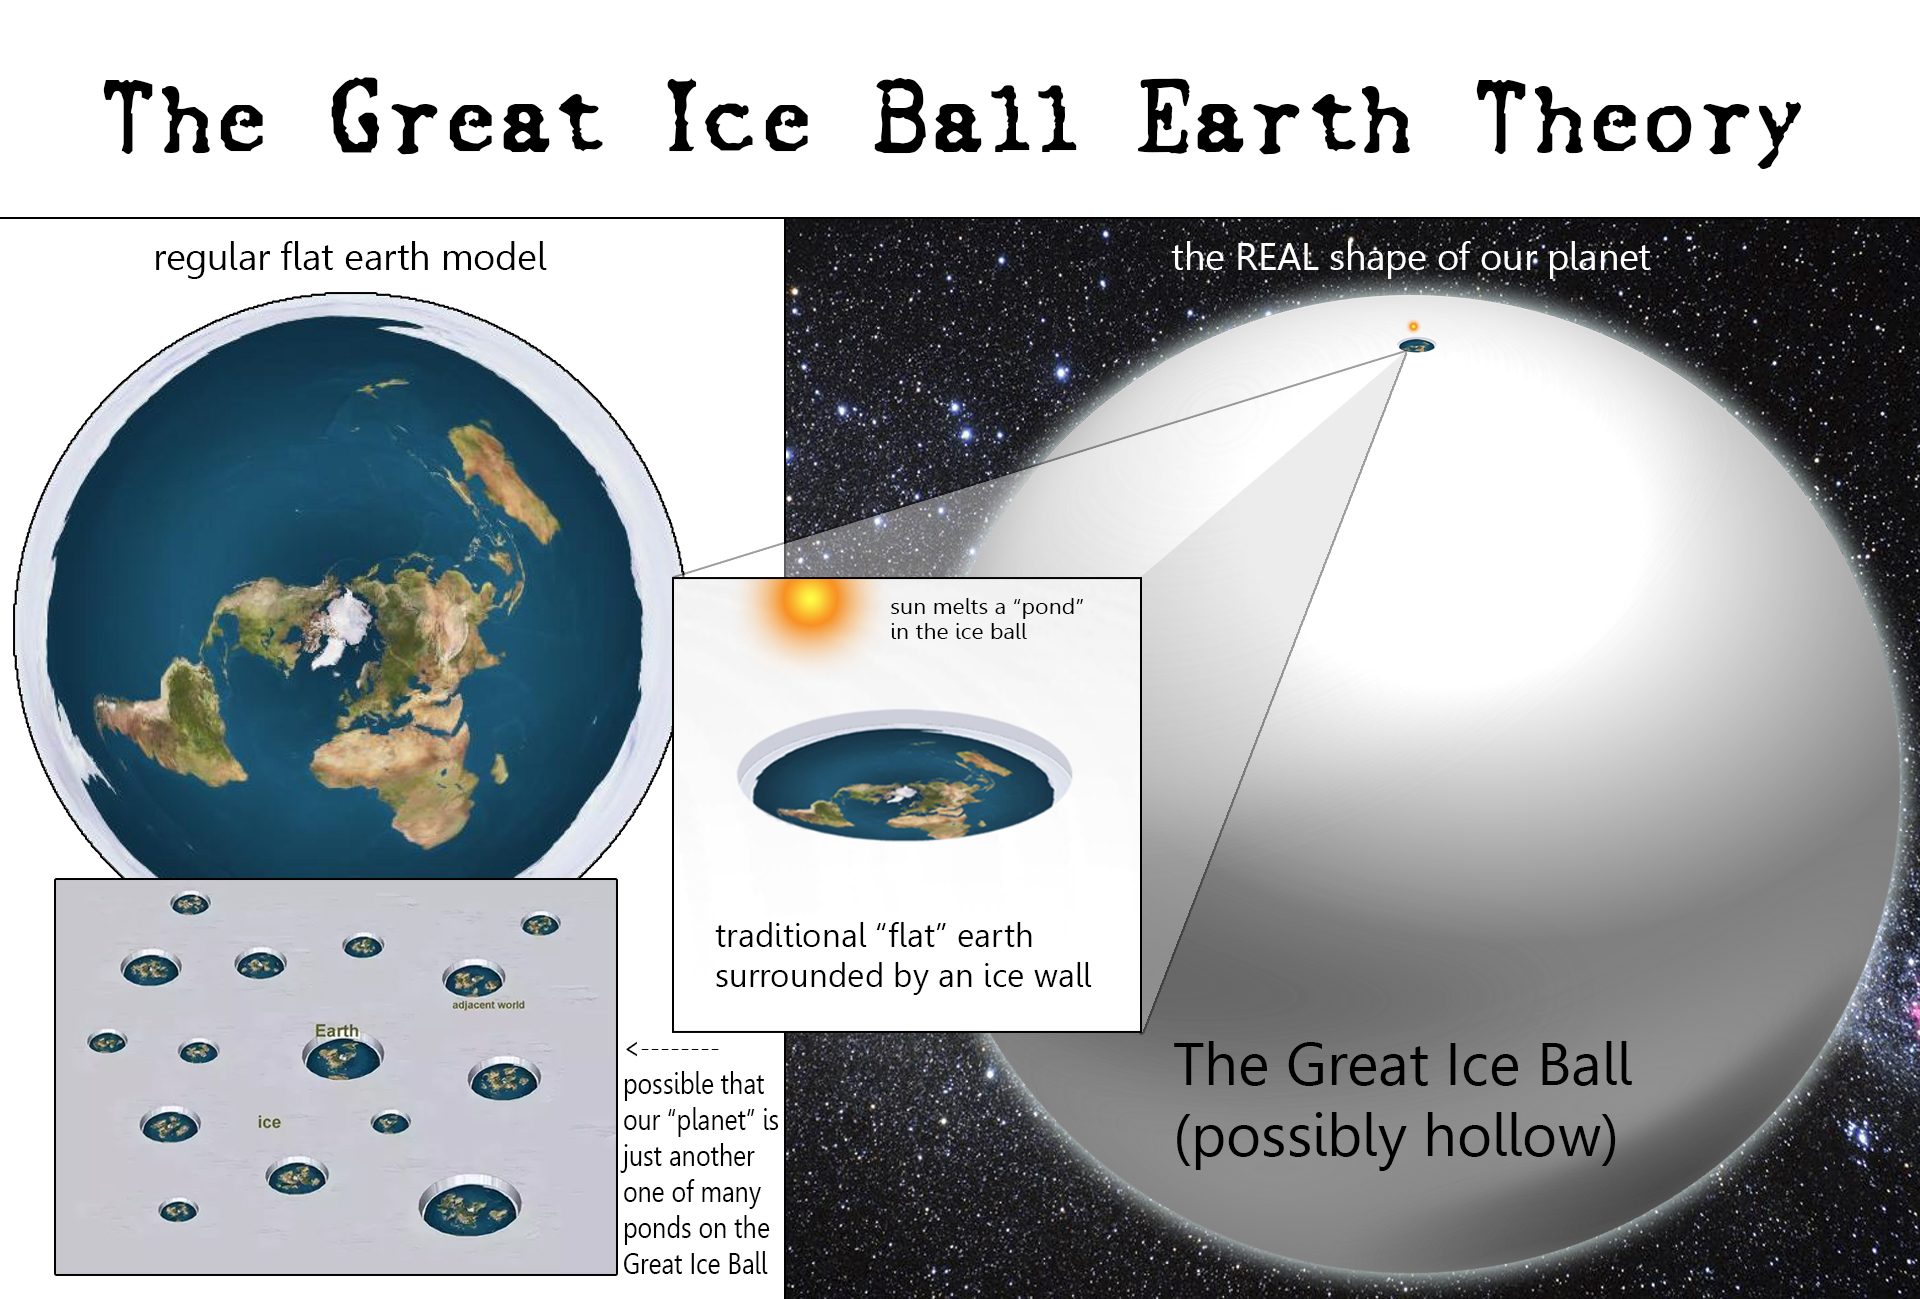 The Great Ice Ball Theory